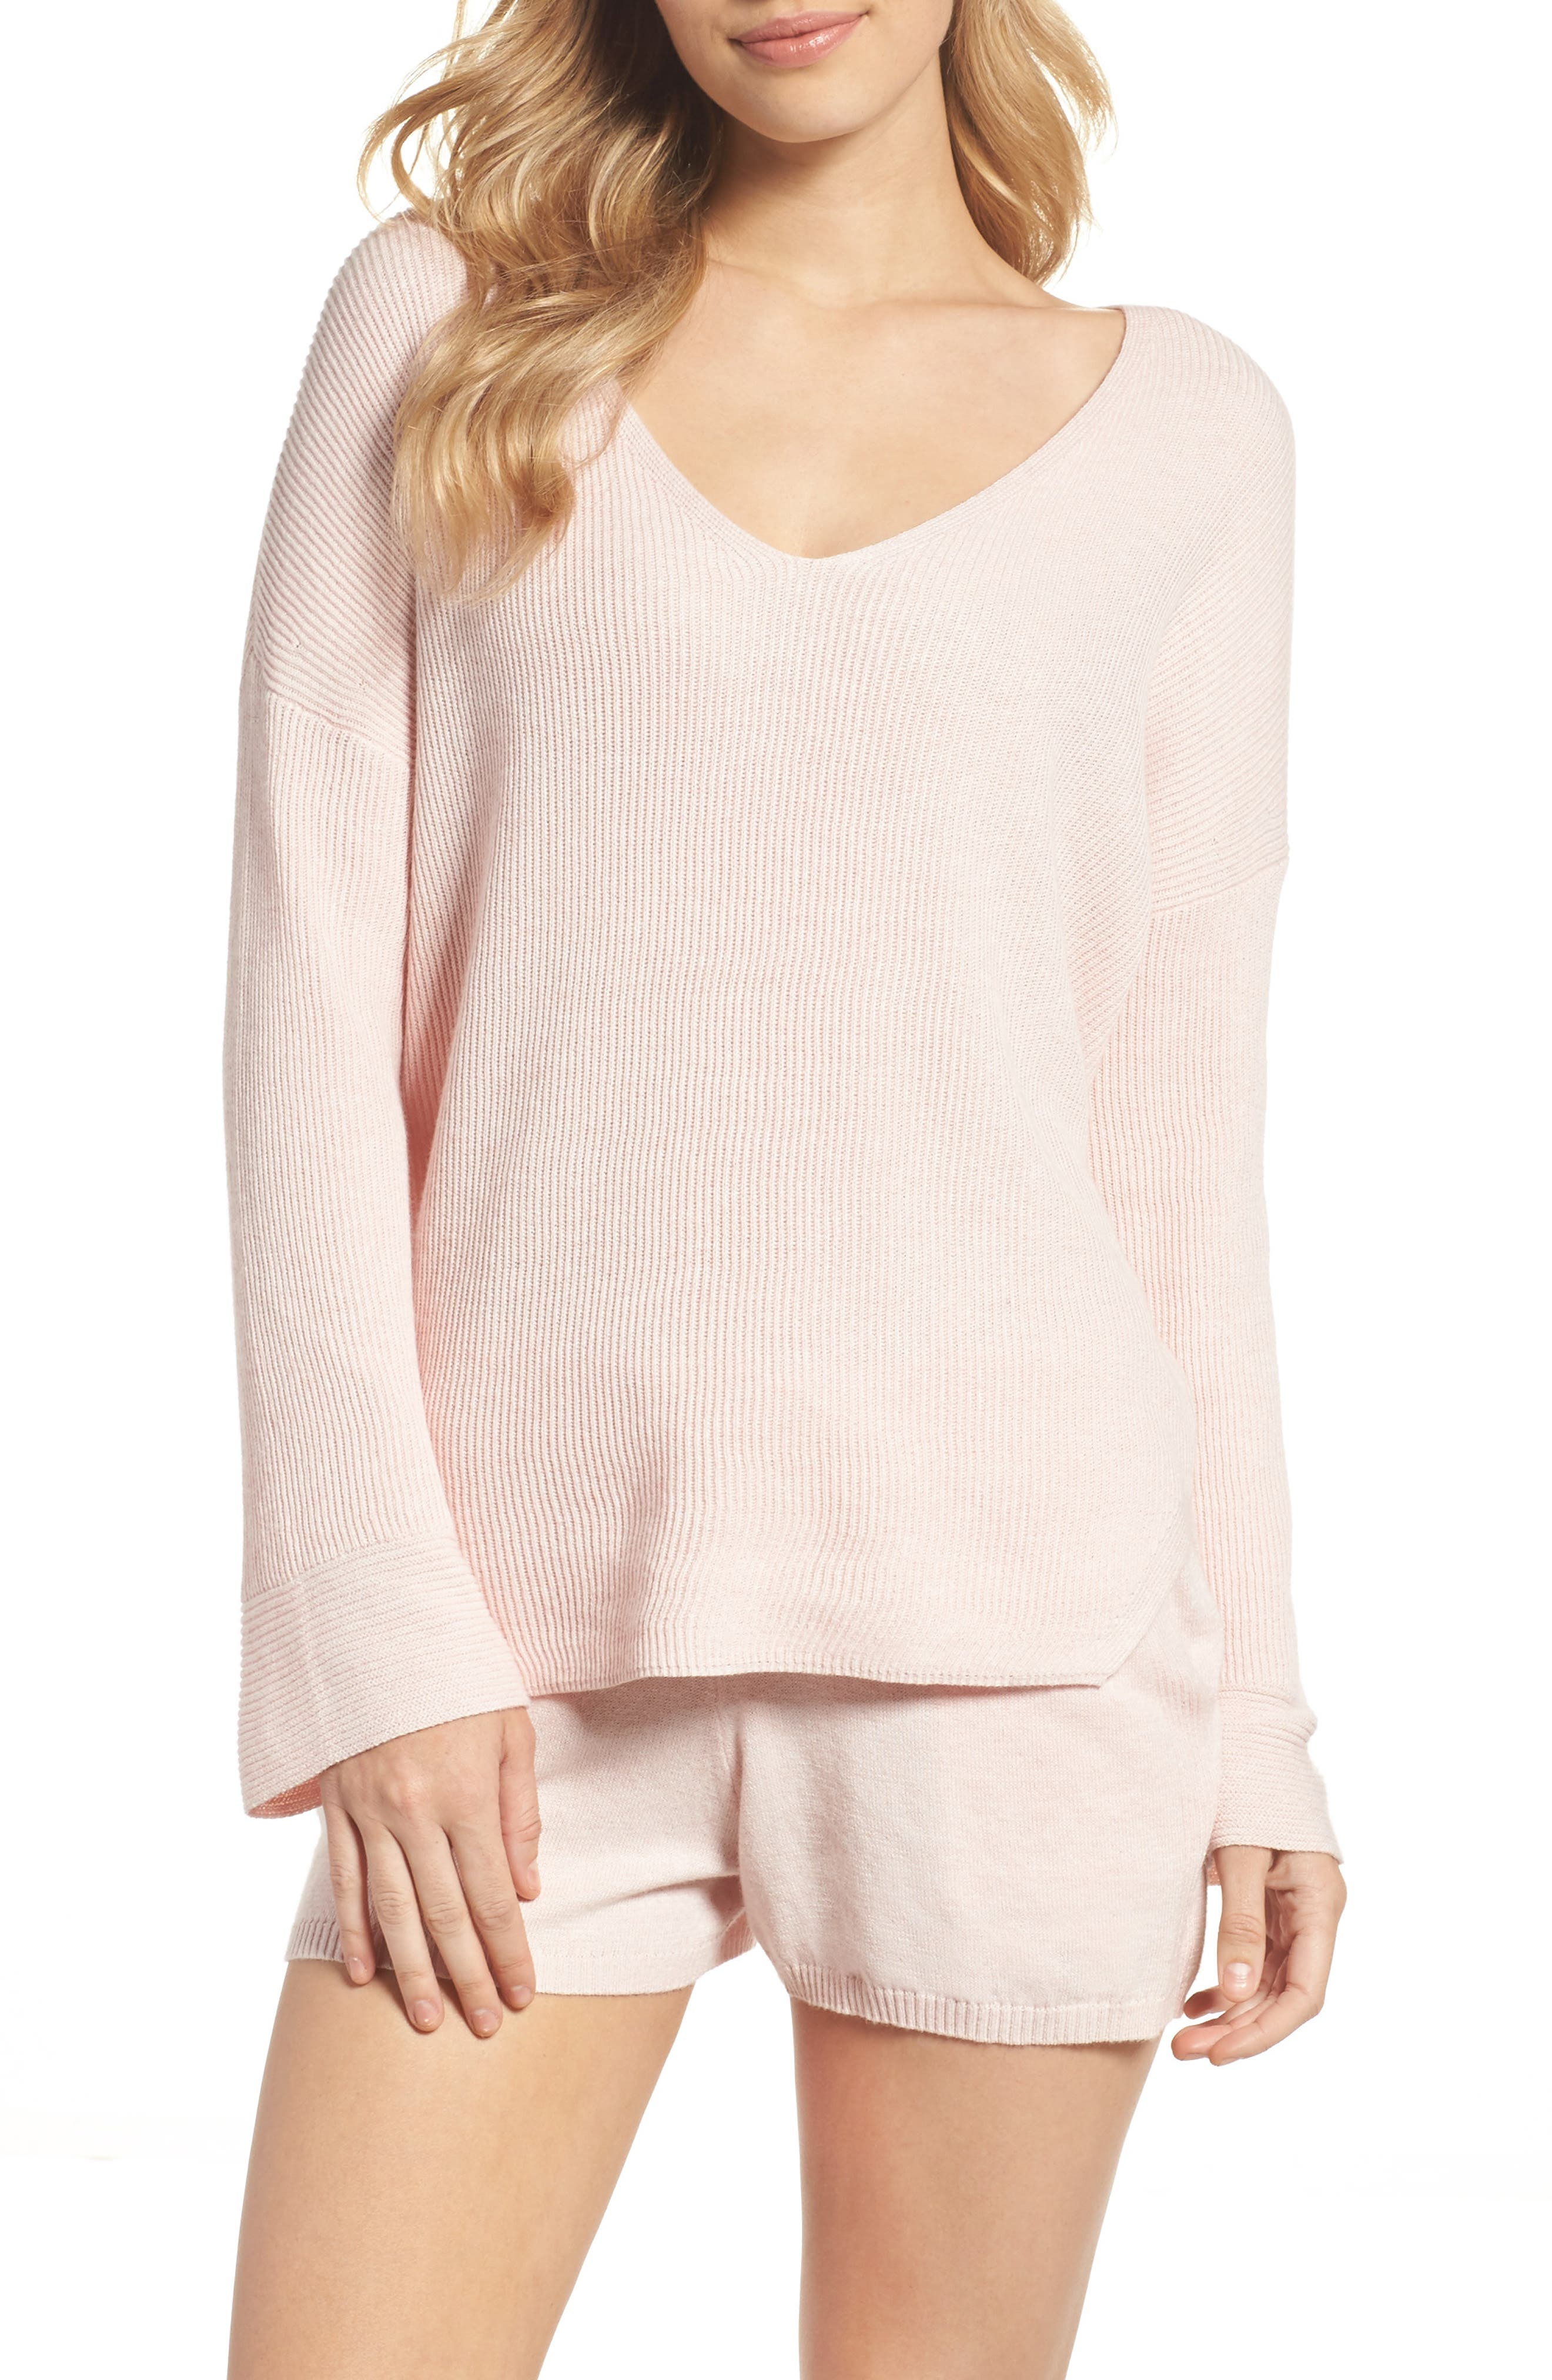 Veronica Lounge Pullover,                             Alternate thumbnail 5, color,                             Soft Pink